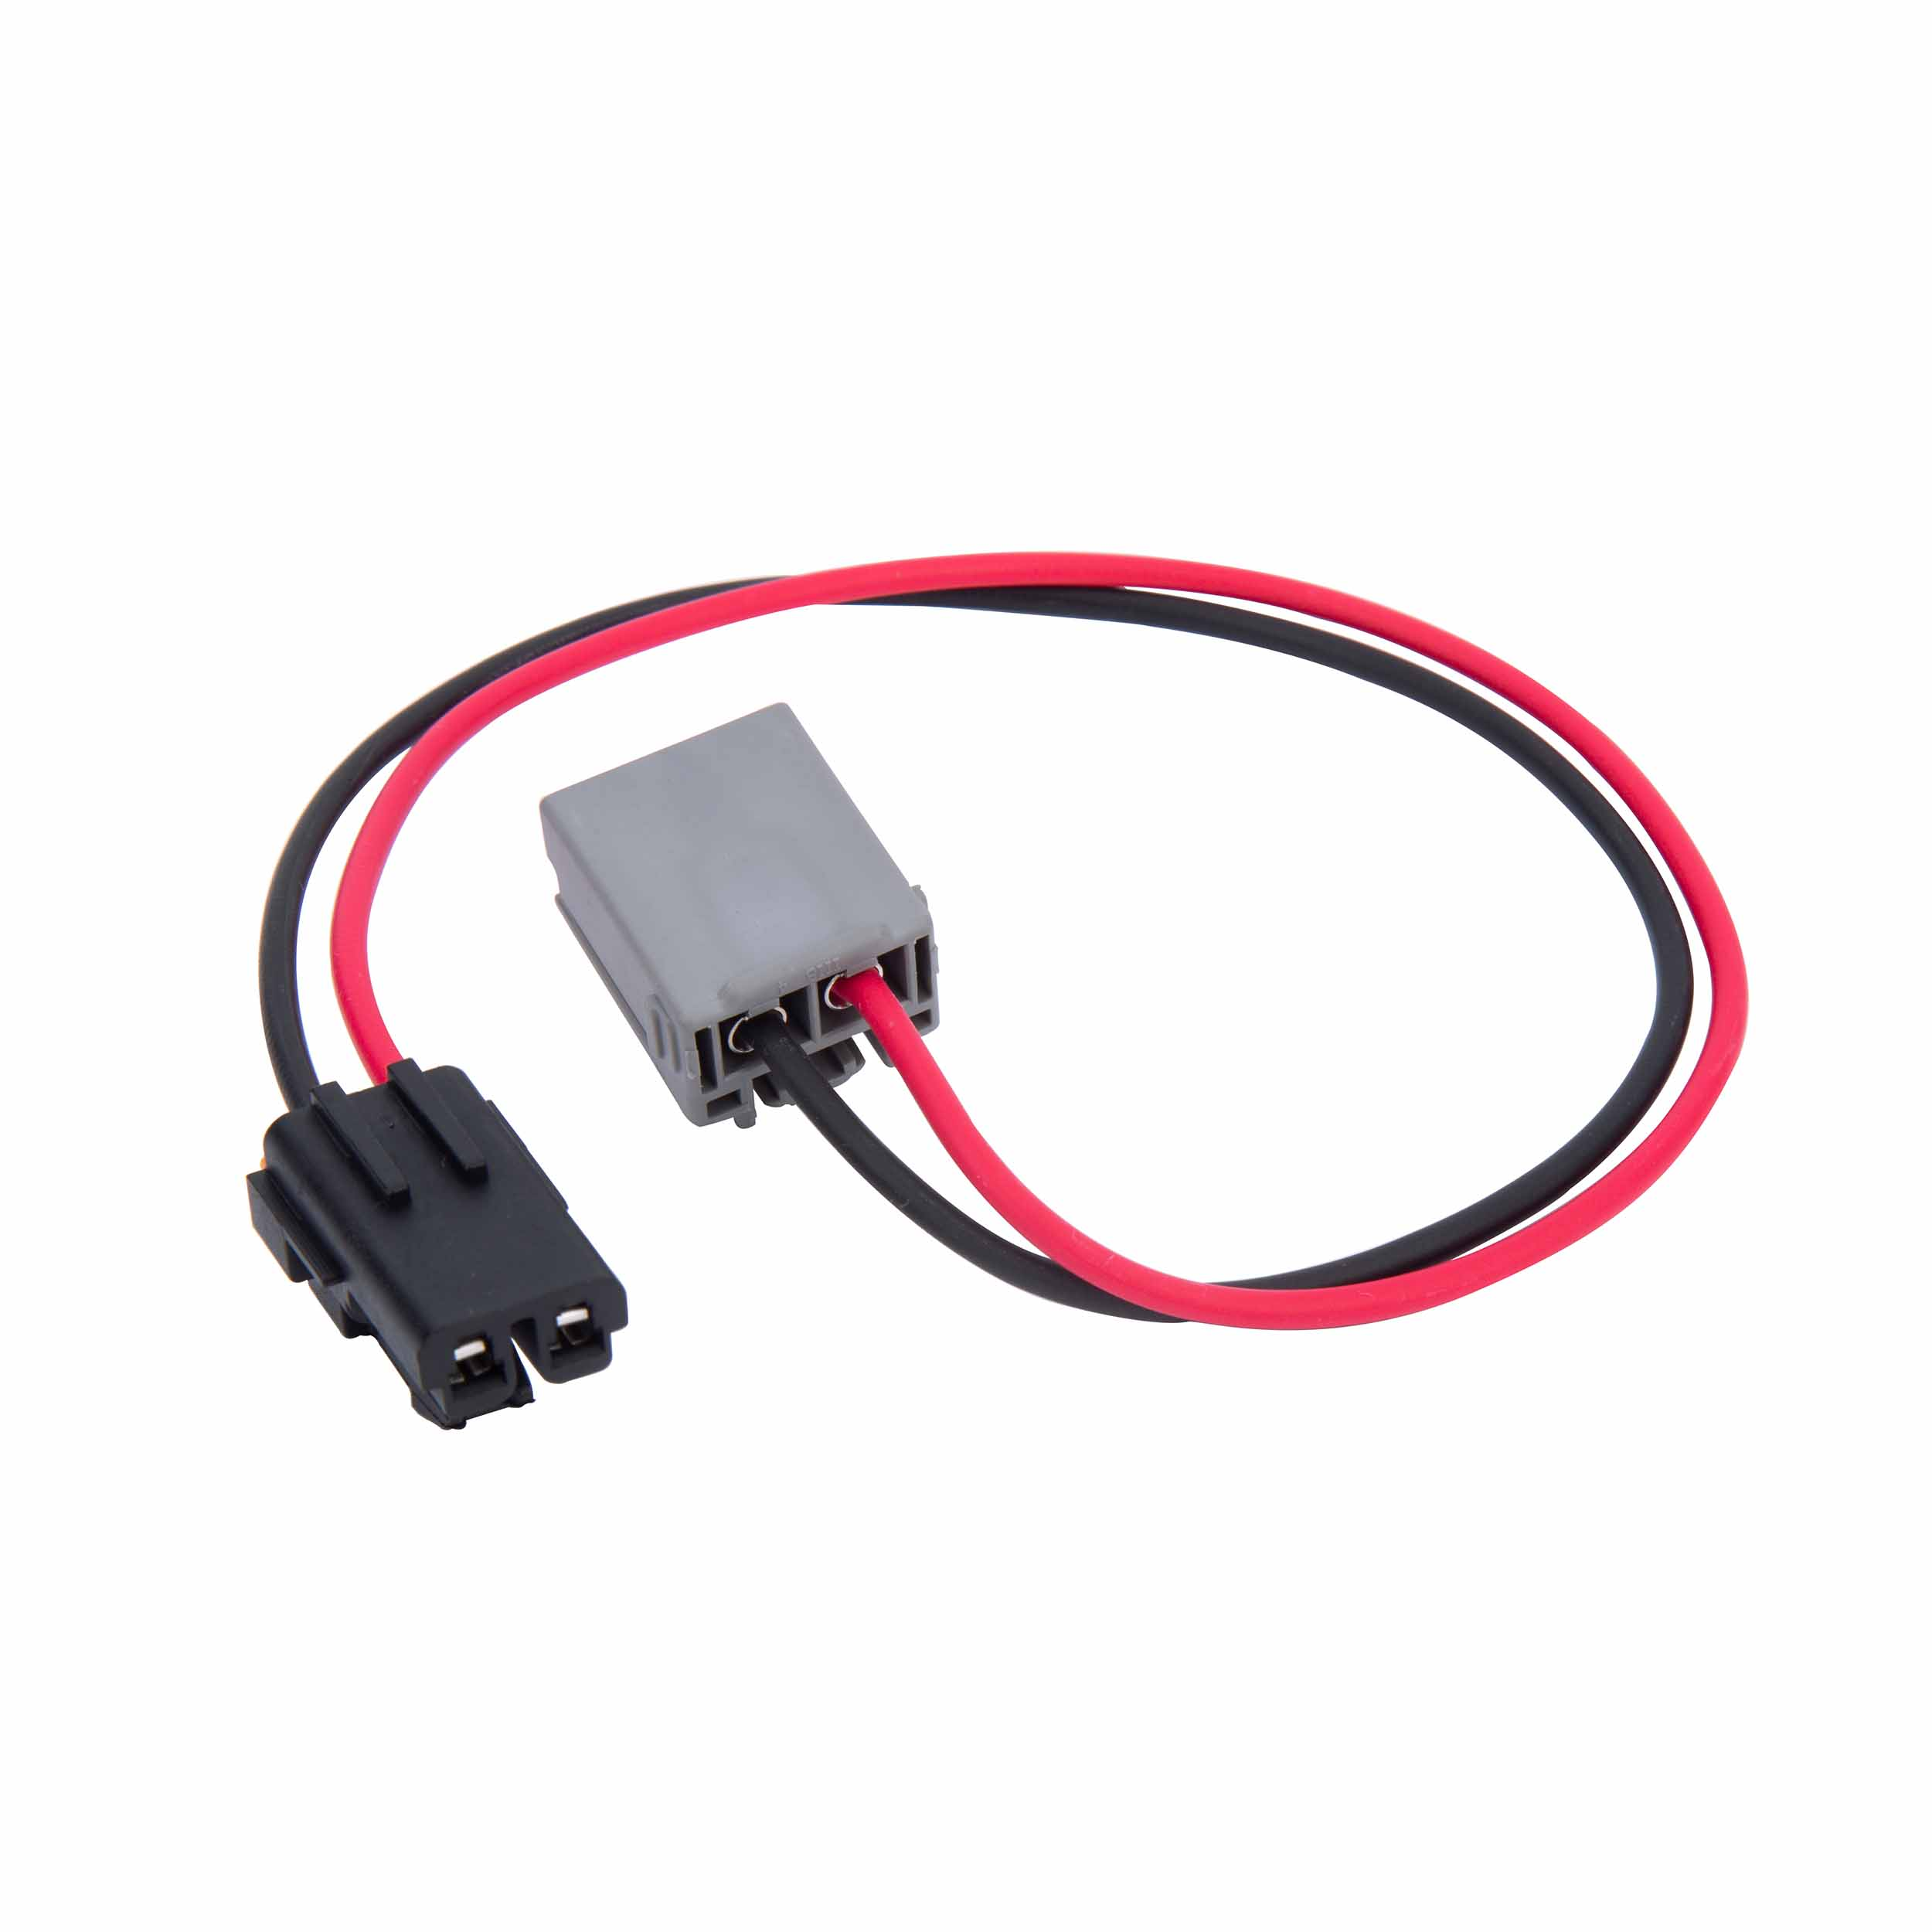 Blower Motor Wiring Harness - Replaces 15-75221 - Fits Cadillac, Chevrolet, GMC & Hummer Vehicles Image